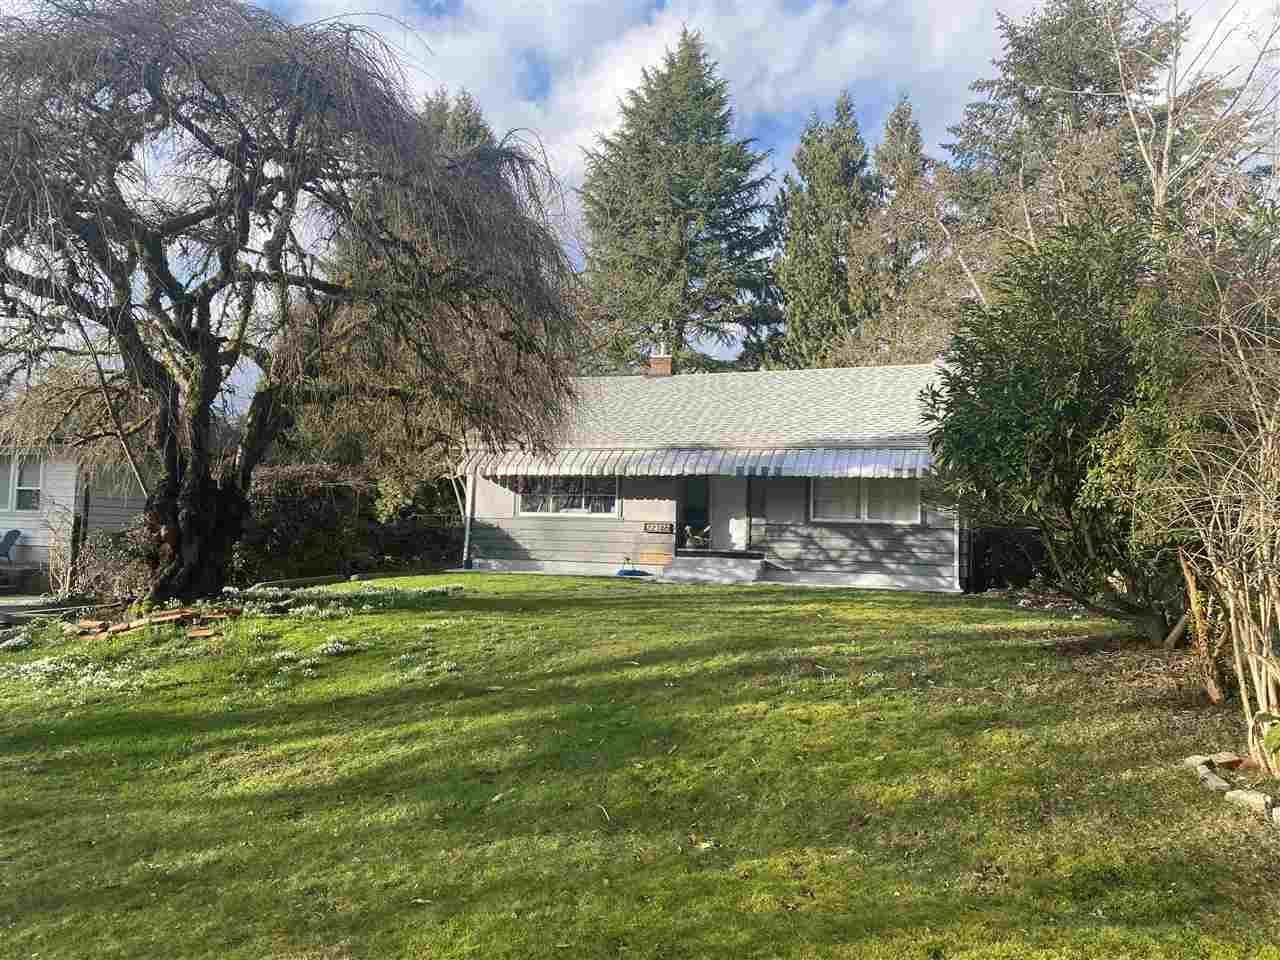 Main Photo: 22165 CLIFF Avenue in Maple Ridge: West Central House for sale : MLS®# R2541842